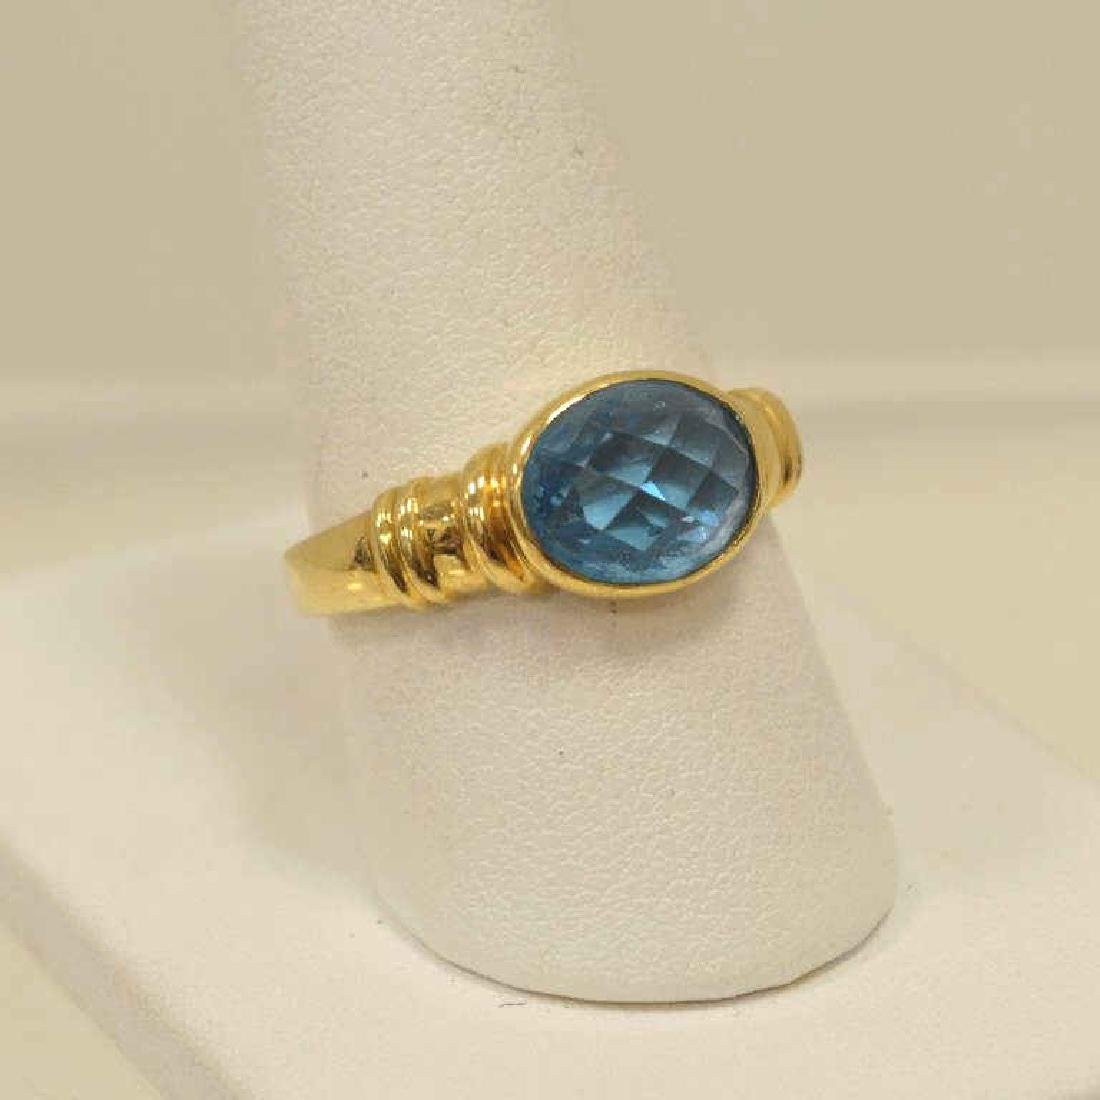 18kt yellow gold blue topaz ring - 2